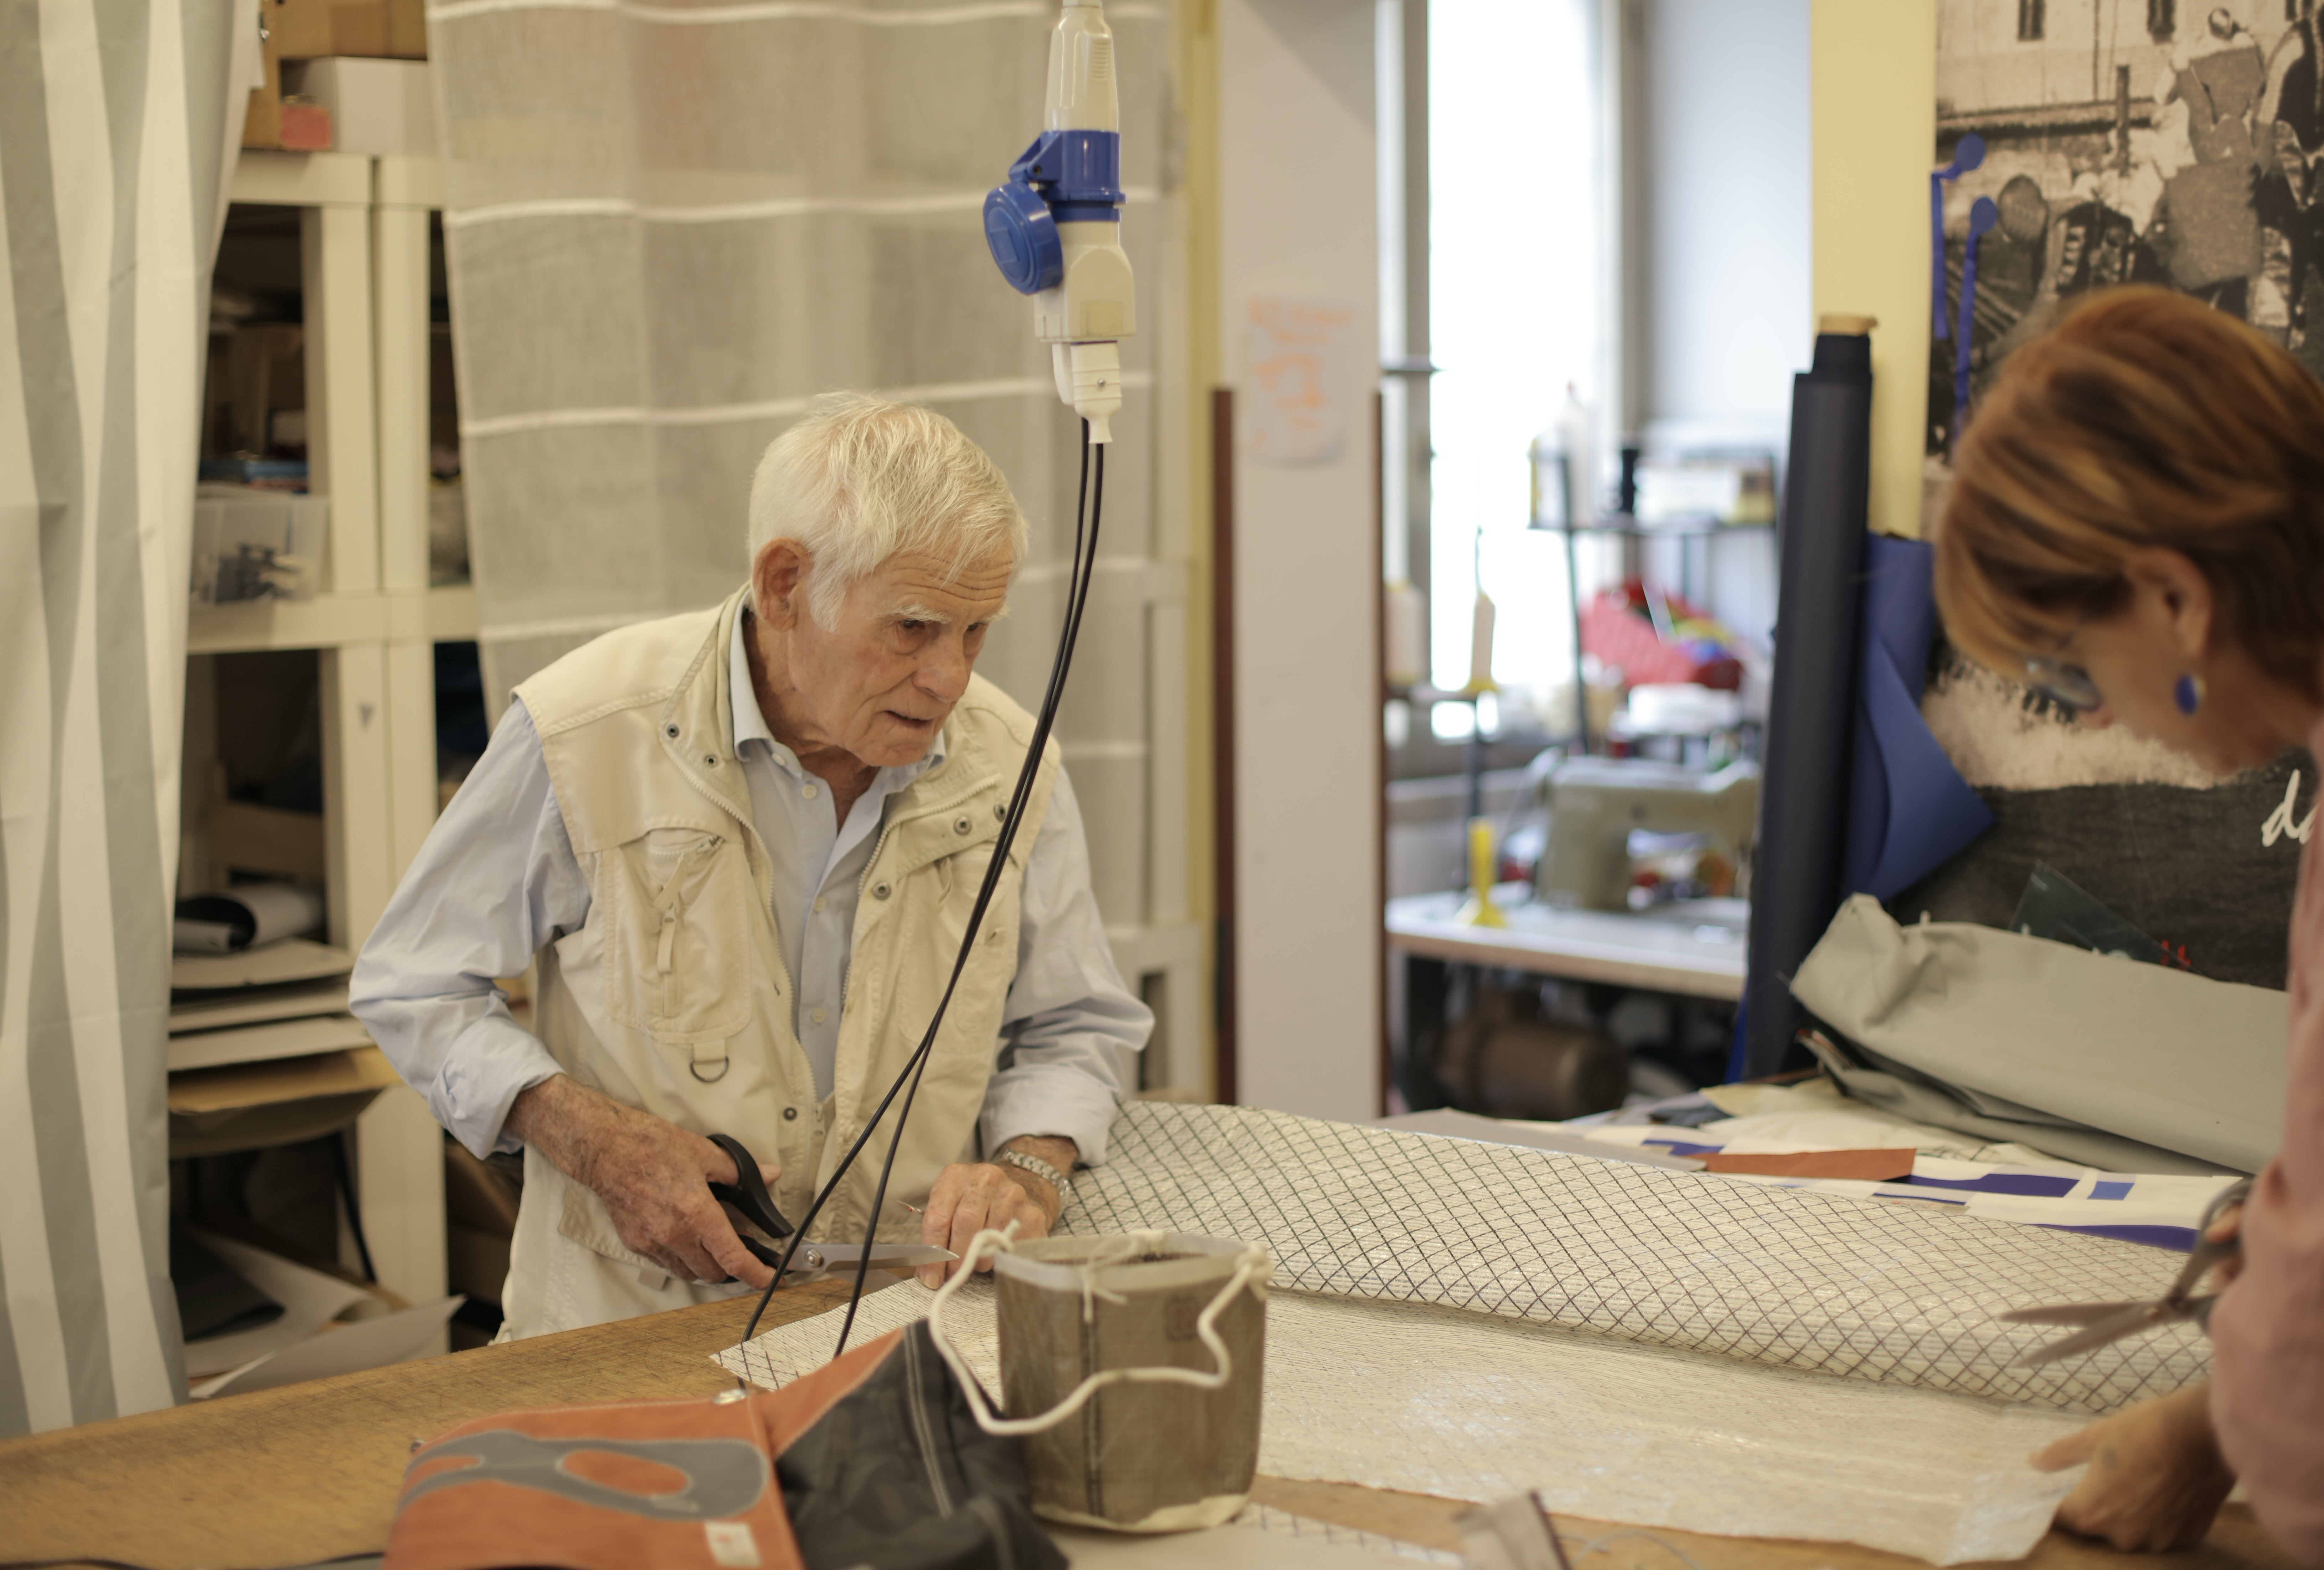 Dementia & The Arts: 7 Benefits to Crafting With Your Residents